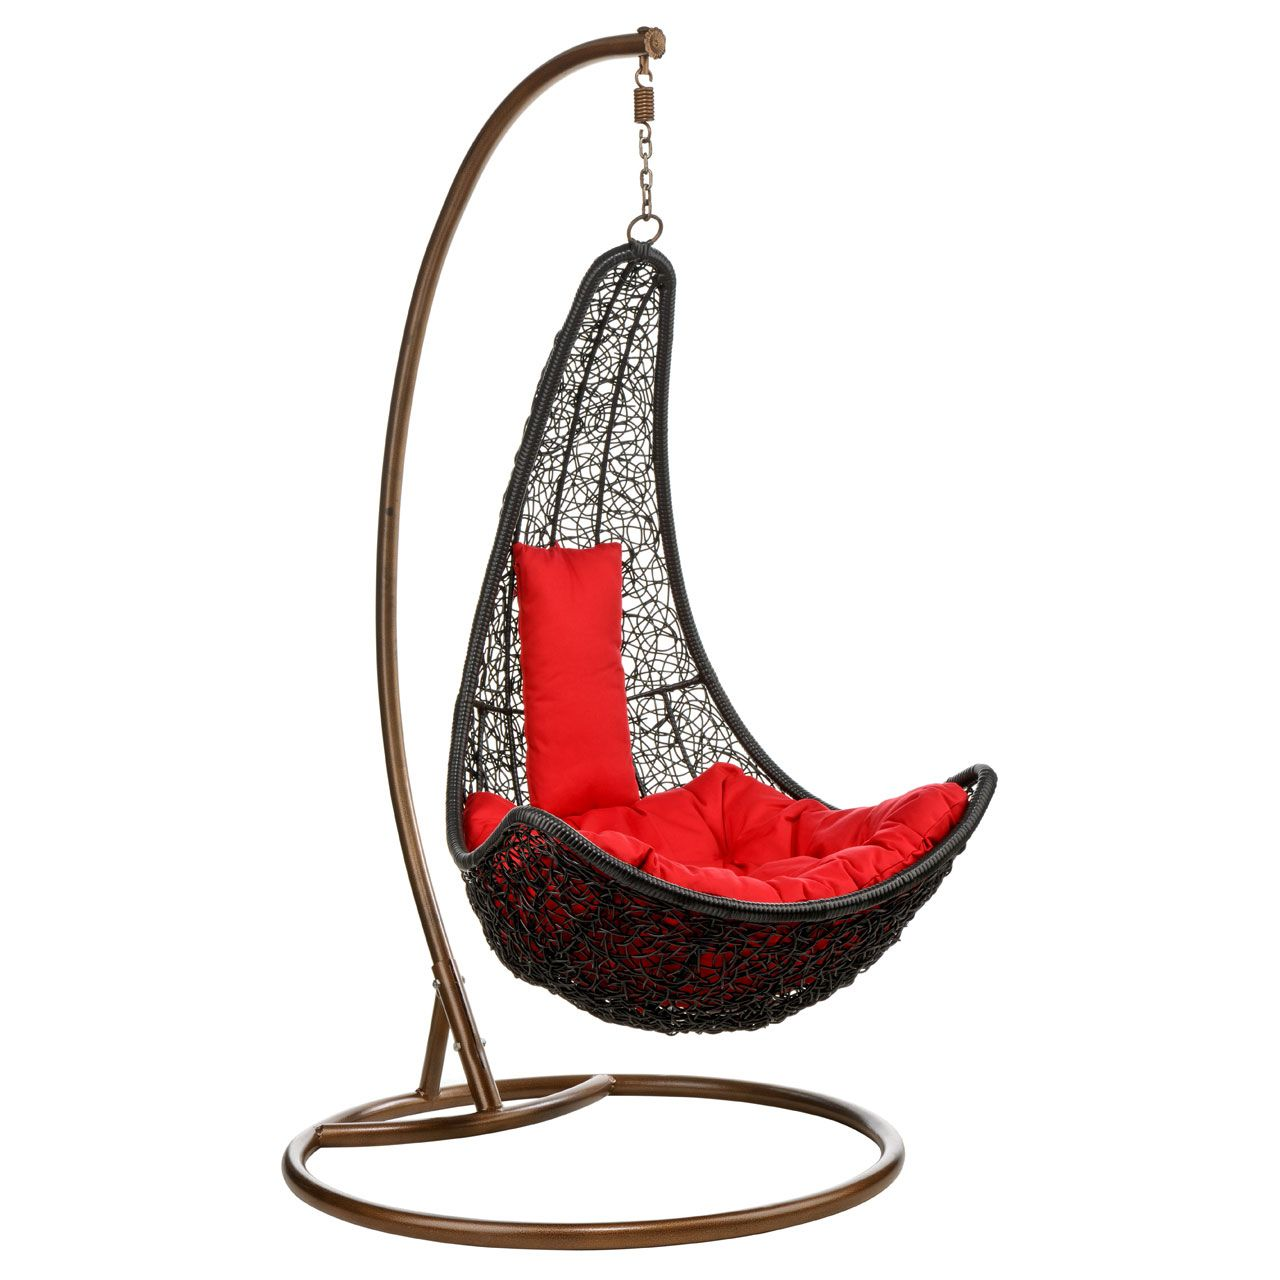 Cool Black Color Indoor Hanging Chair With Red Cushion Color And Brown Iron  Stained Color Good Looking Indoor Hanging Chair IKEA Design Ideas Chair,  Home ...